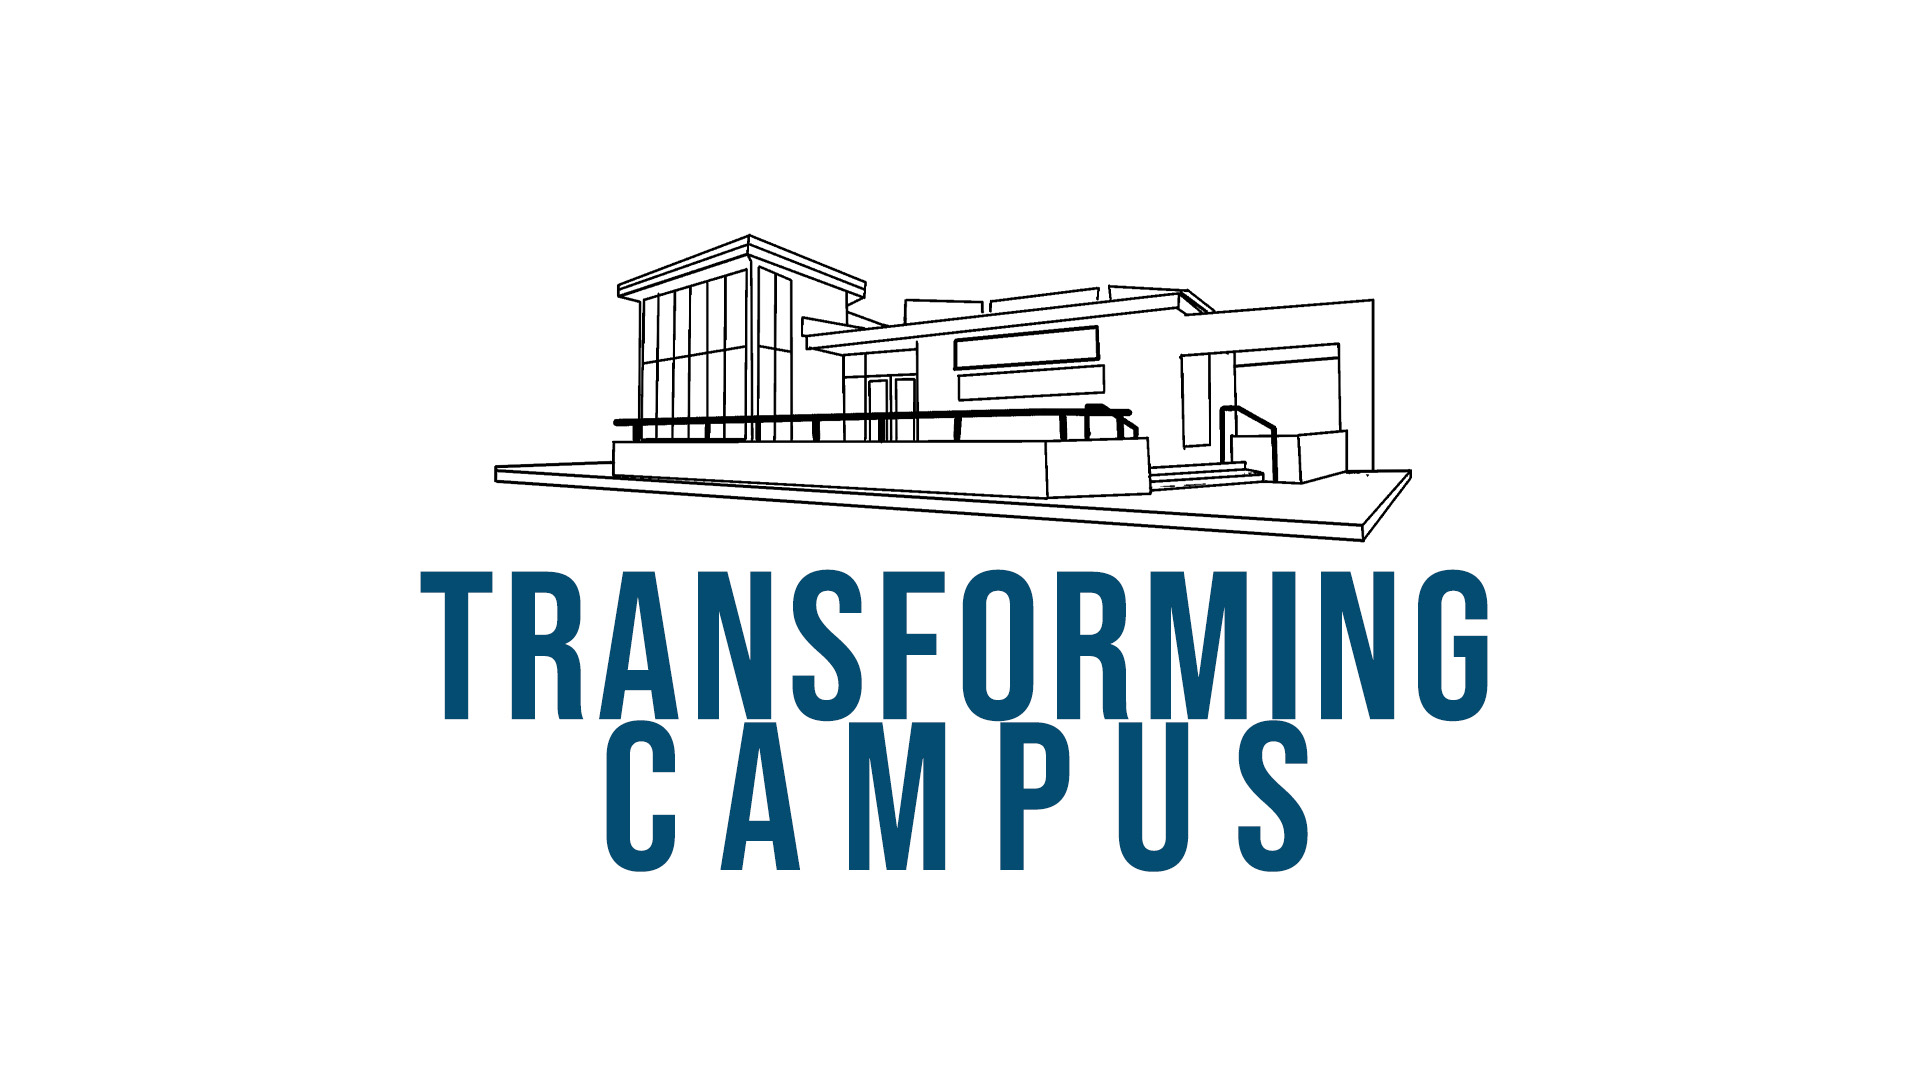 TRANSFORMING CAMPUS LOGO WORDS